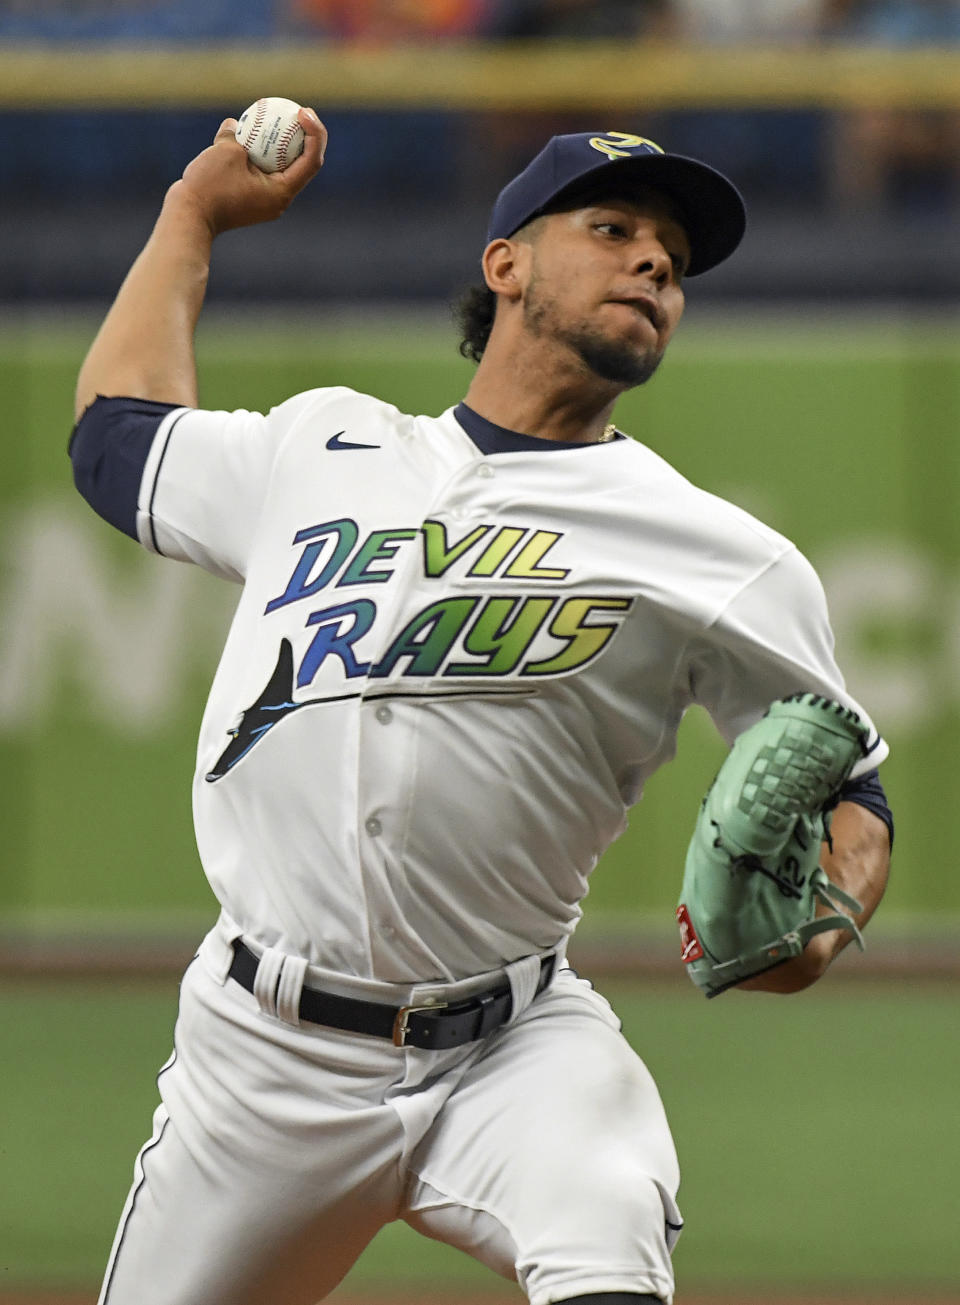 Tampa Bay Rays starter Luis Patino pitches against the Chicago White Sox during the first inning of a baseball game, Saturday, Aug. 21, 2021, in St. Petersburg, Fla. (AP Photo/Steve Nesius)